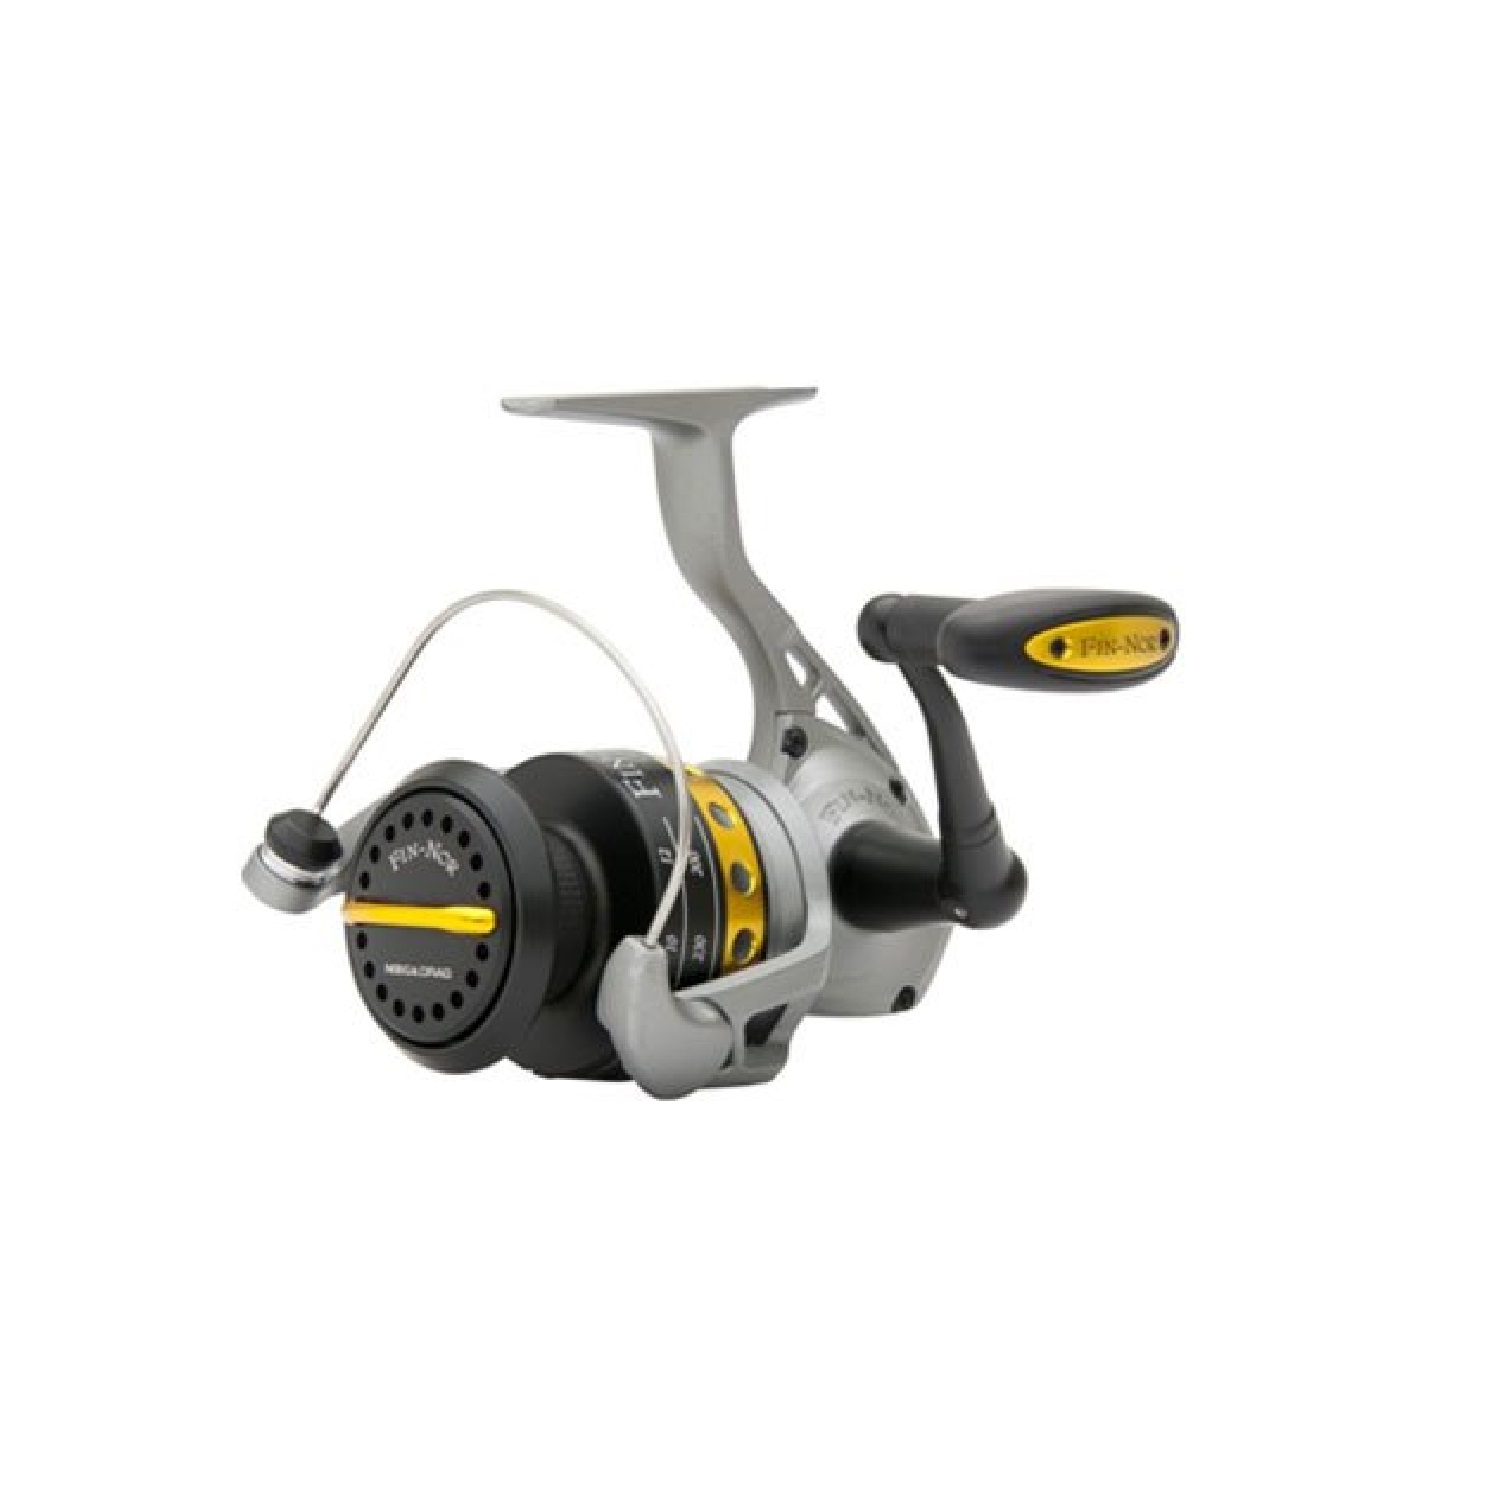 Fin-Nor LT-80 Lethal 65-Braid Spinning Reel with 4.9 1 Gear Ratio, 40-Pound